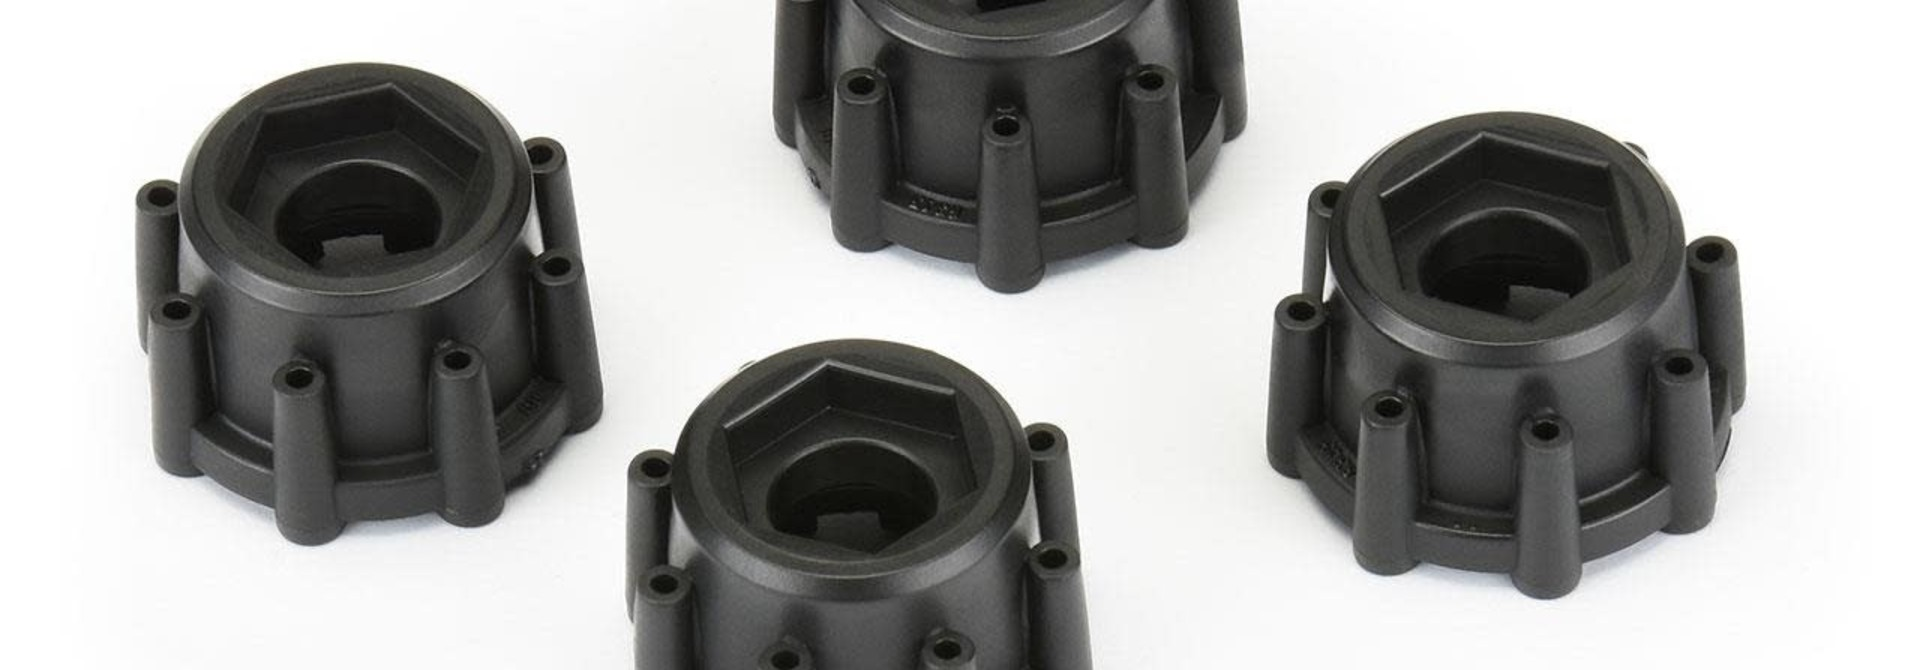 """8x32 to 17mm Hex Adapters for 8x32 3.8"""" Wheels"""